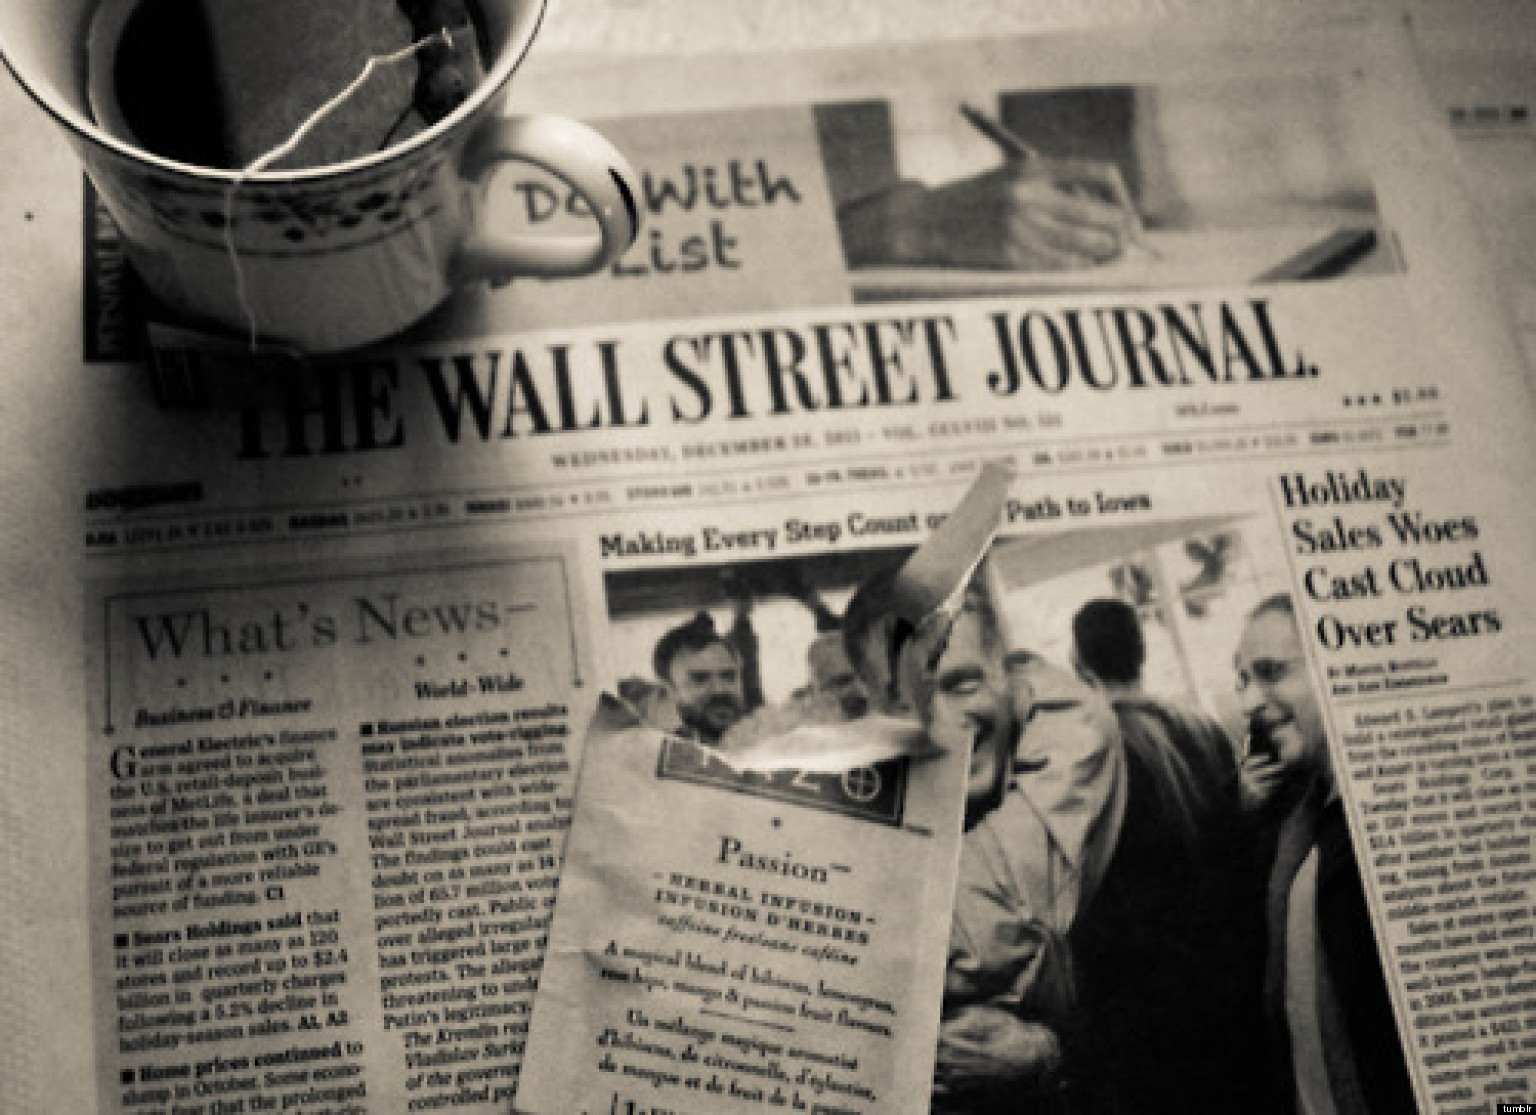 wall street journal thomson reuters article